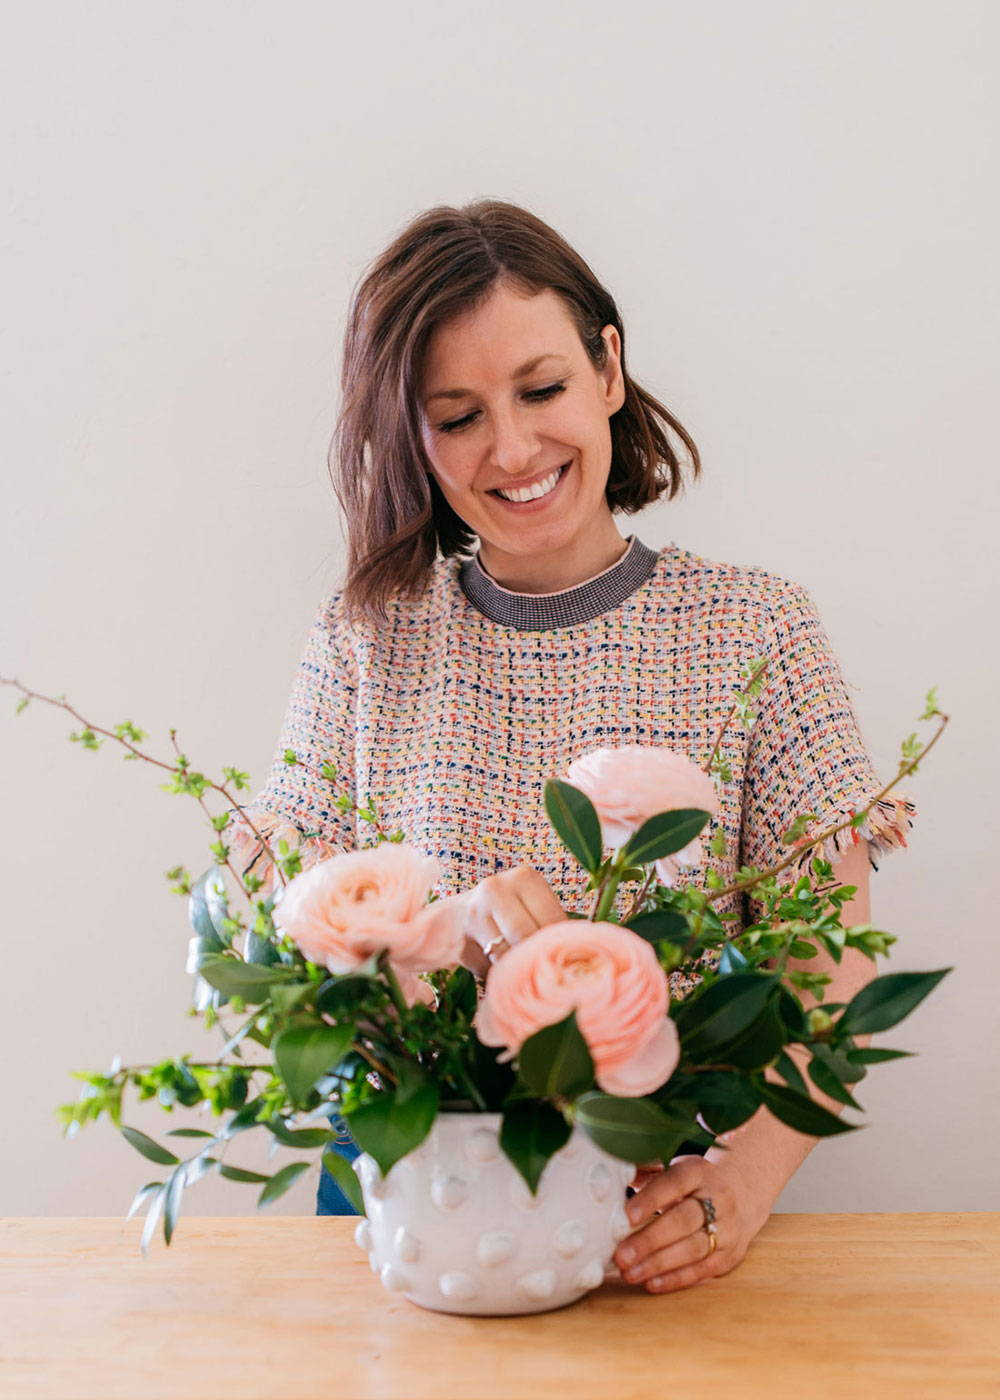 Emily Hall of Threads and Blooms fills a vase with fresh spring blooms